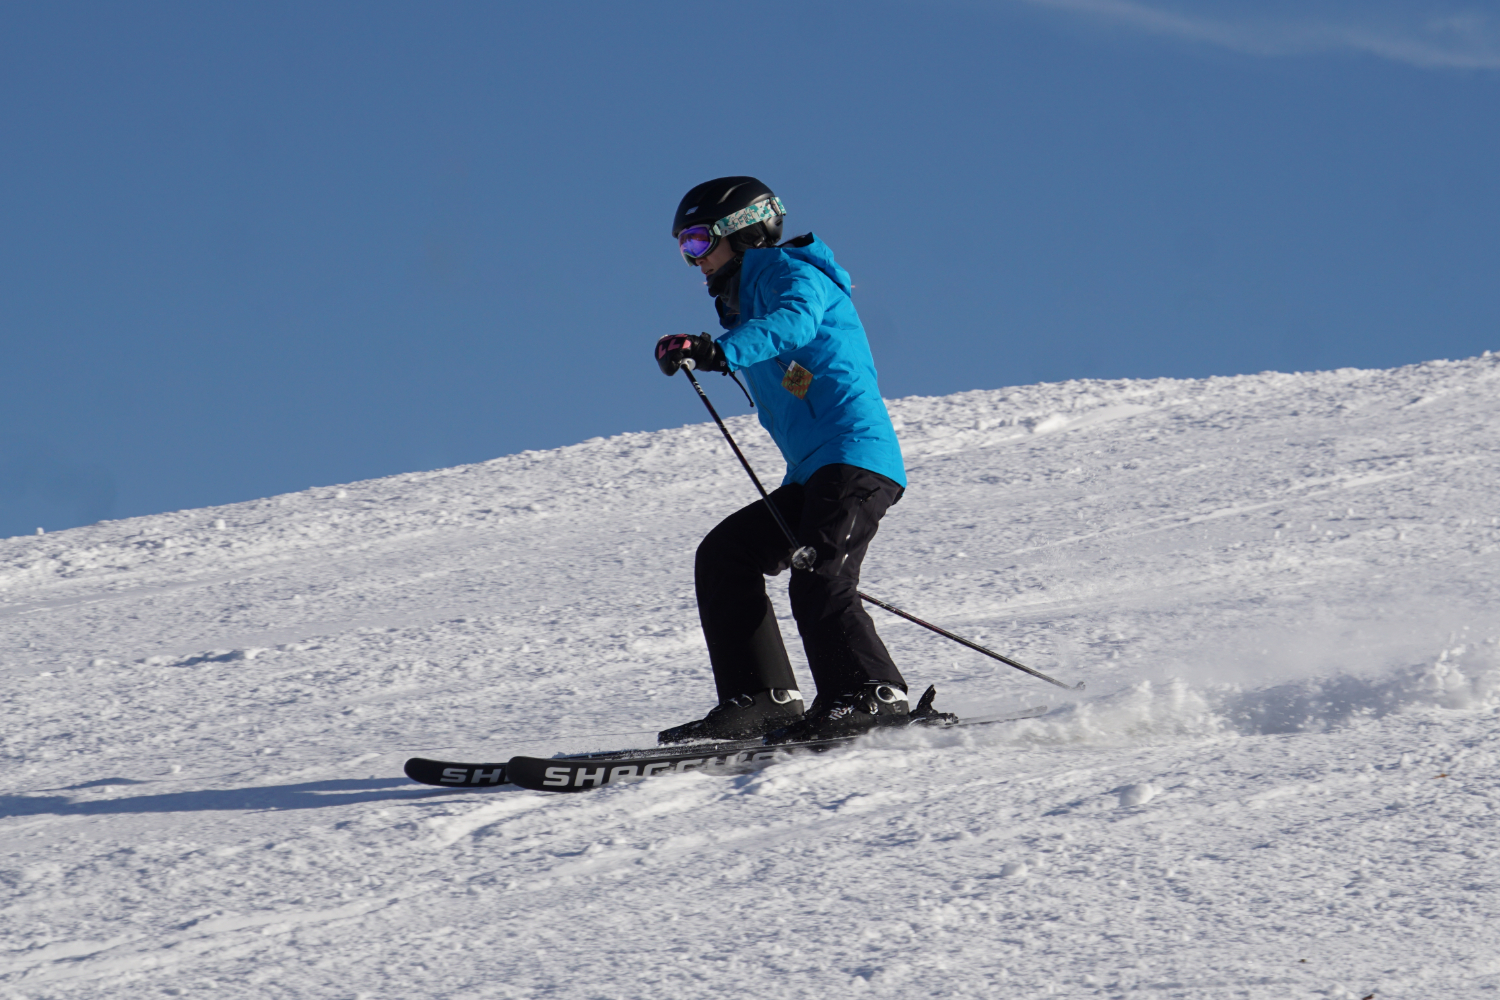 skier with new skis skiing